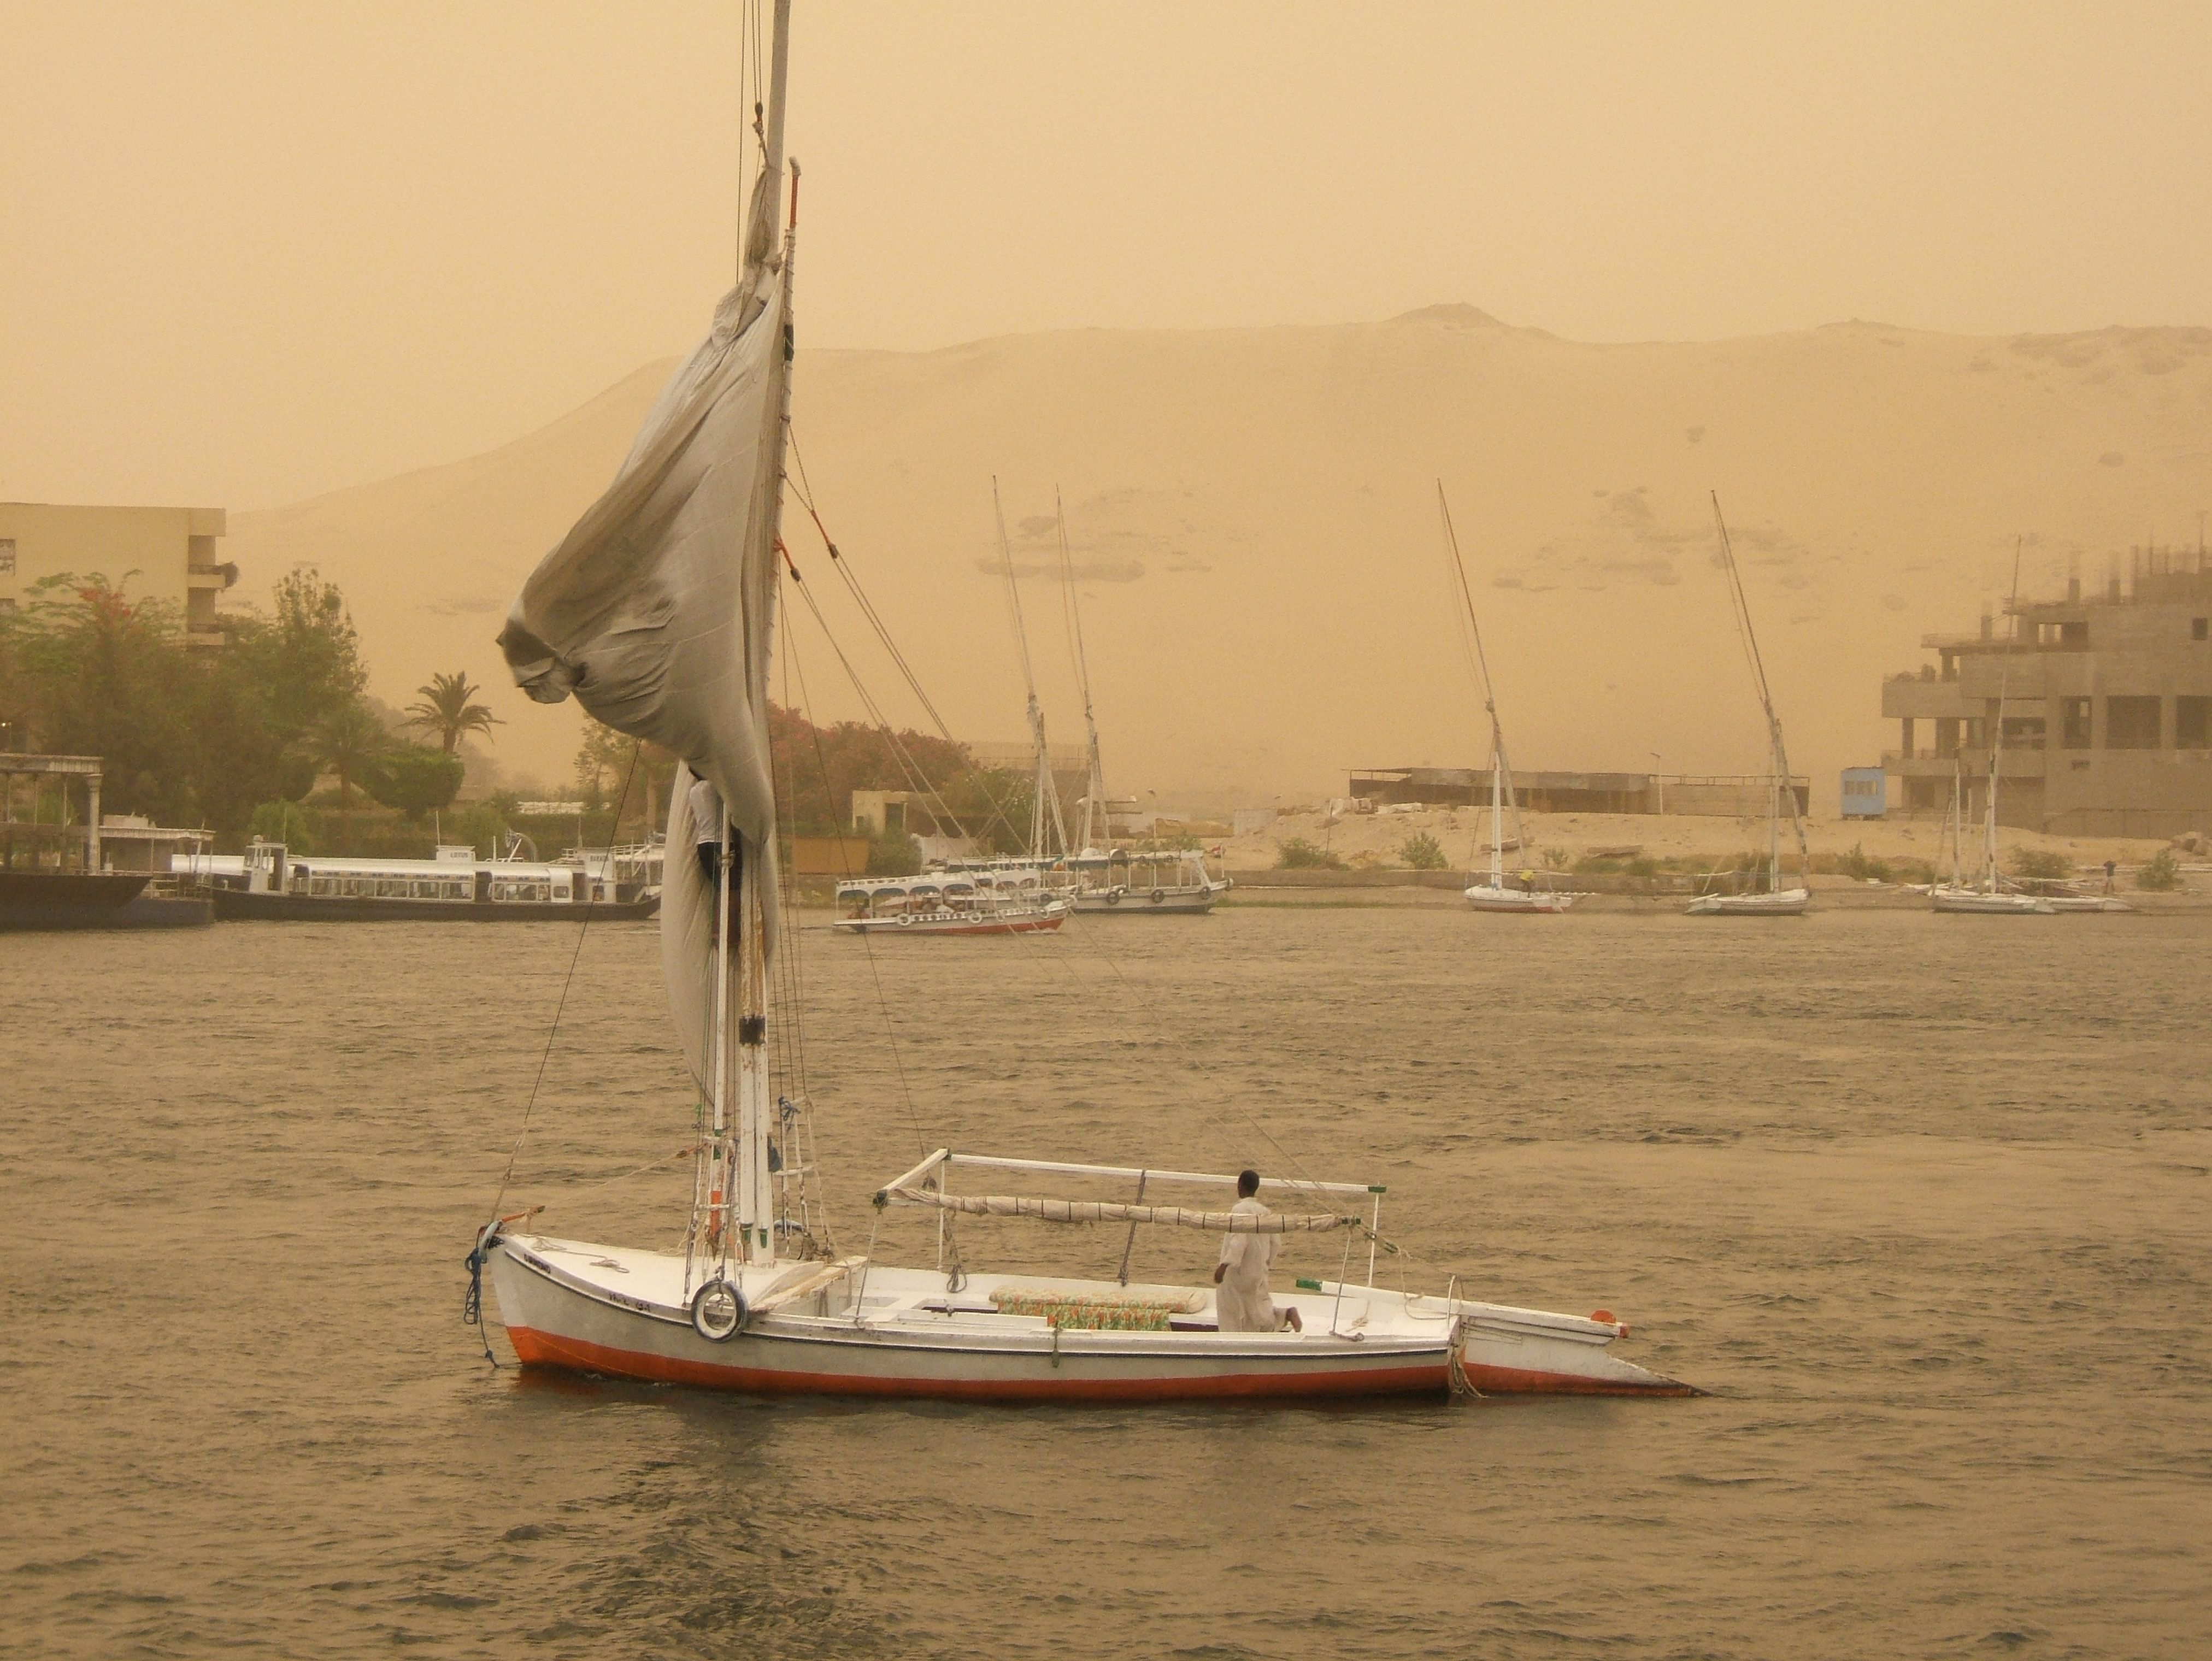 Sand storm in Egypt